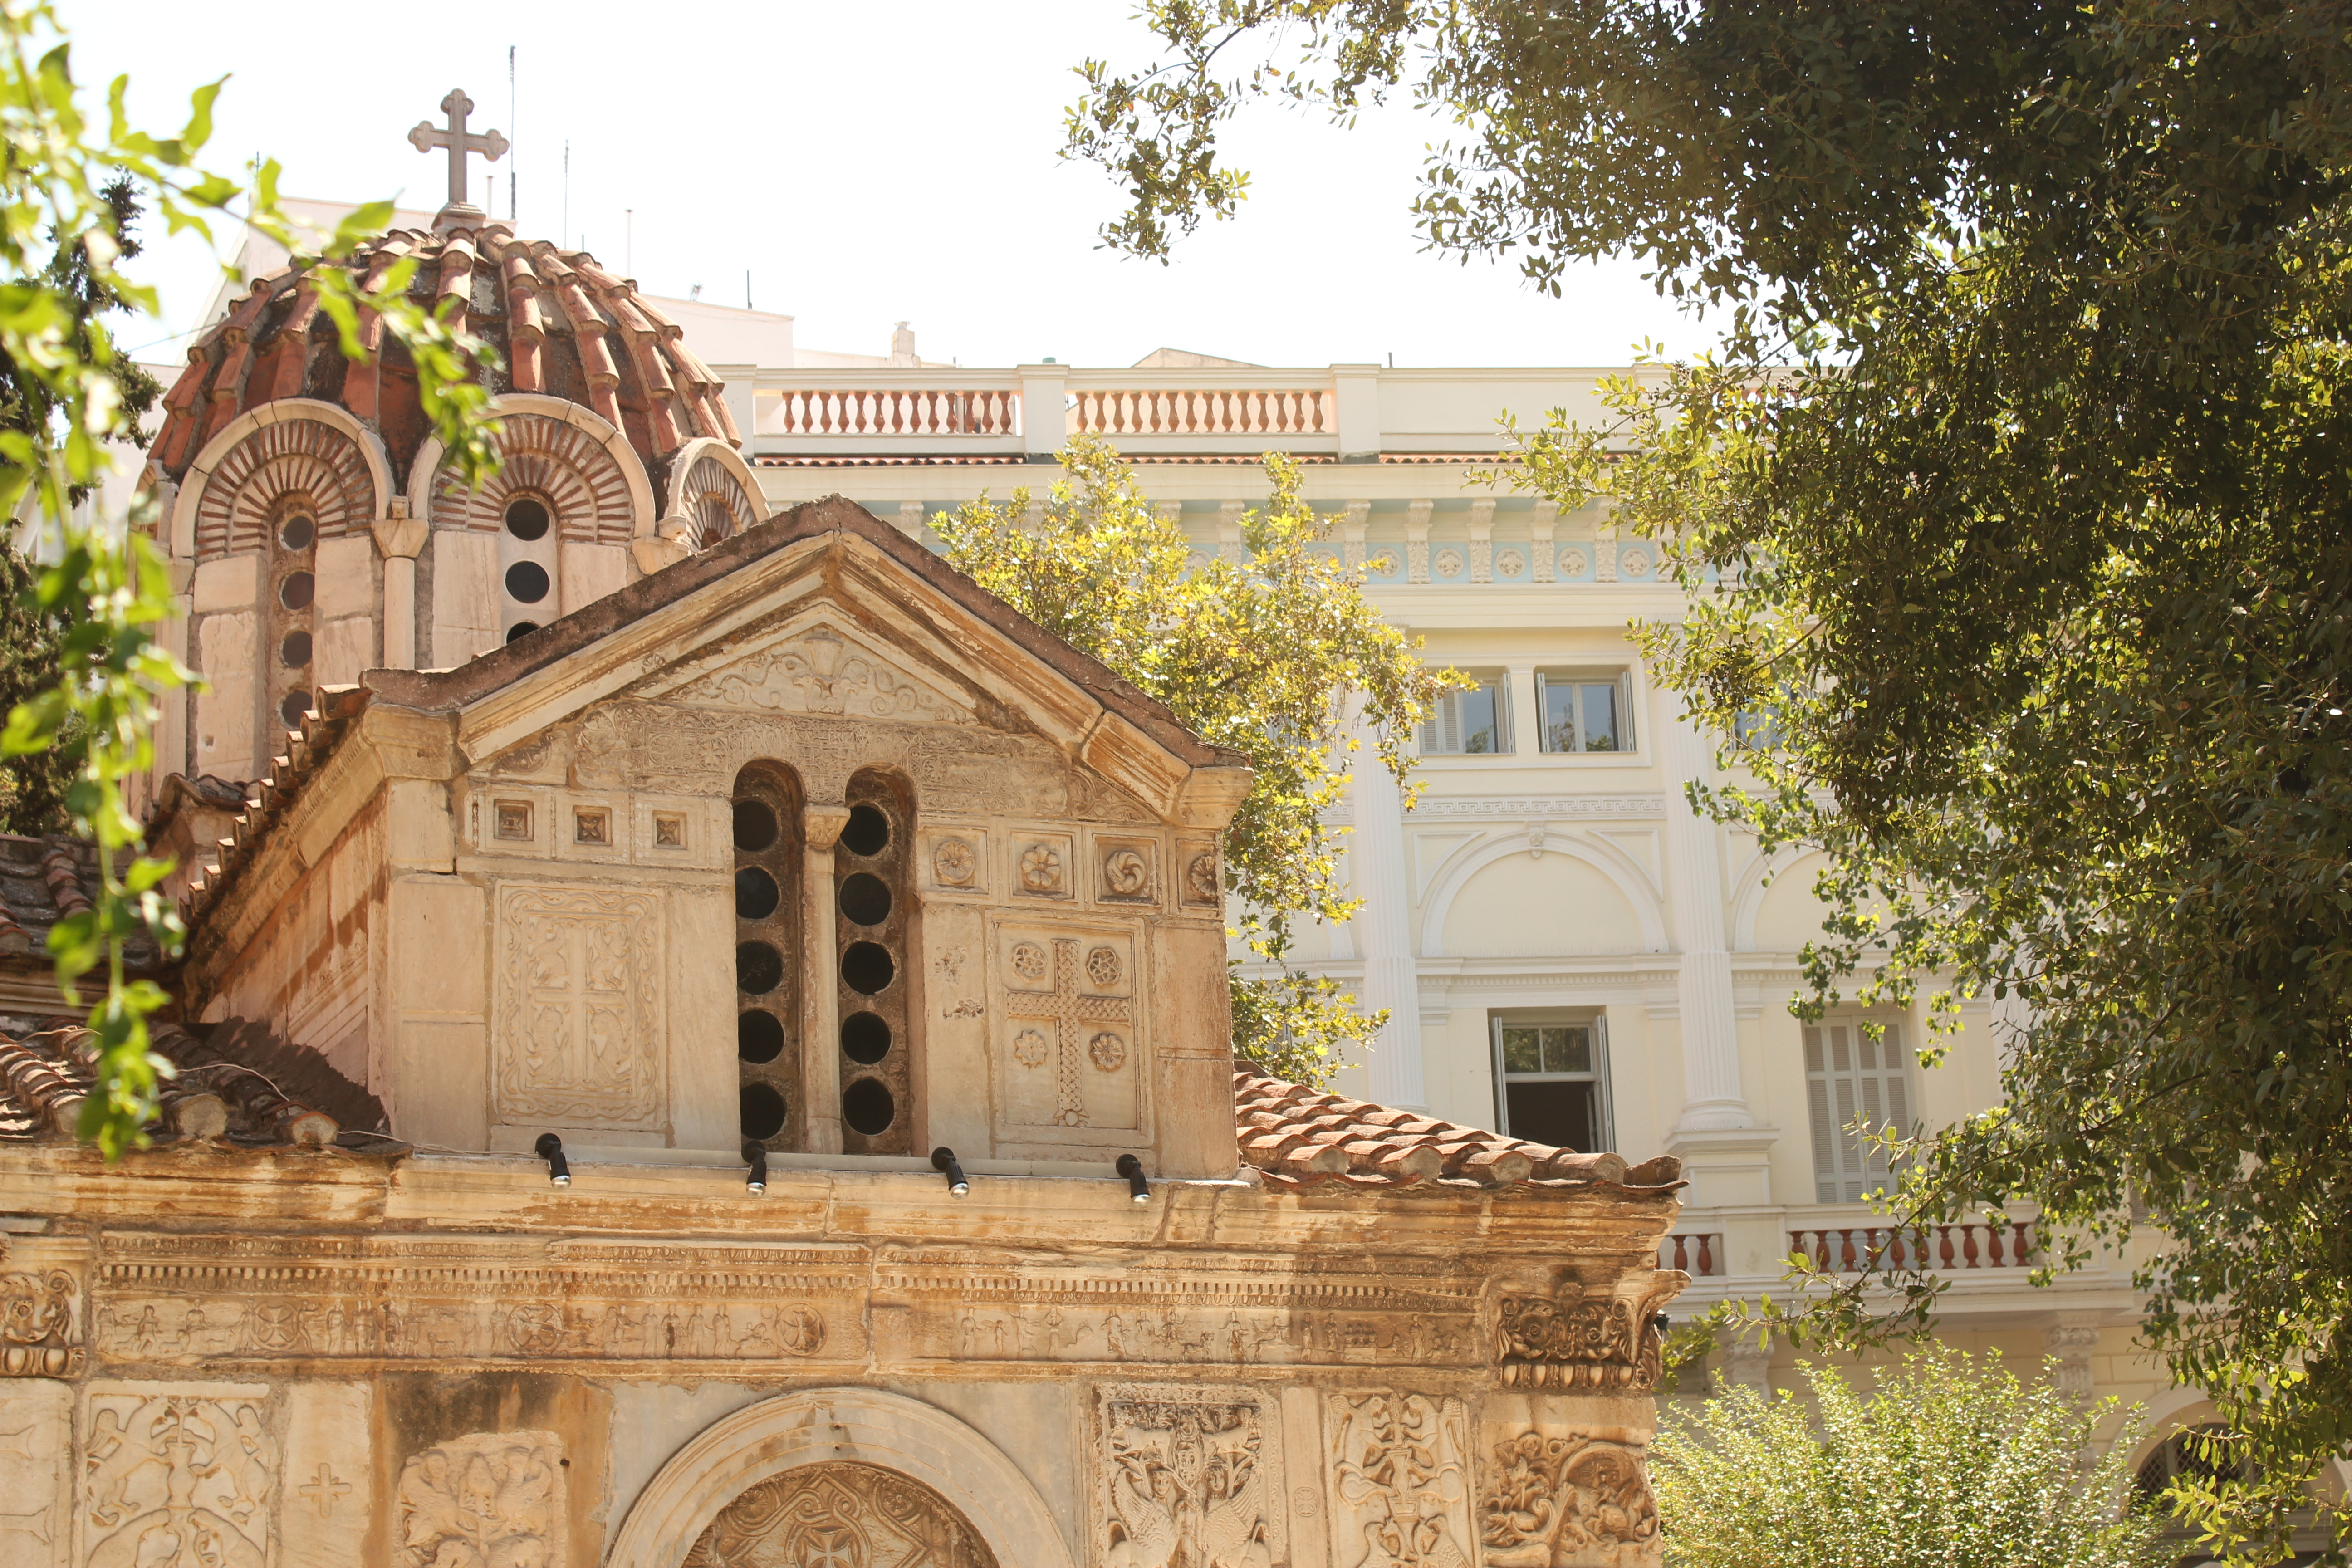 Church; Athens, Greece; 2013